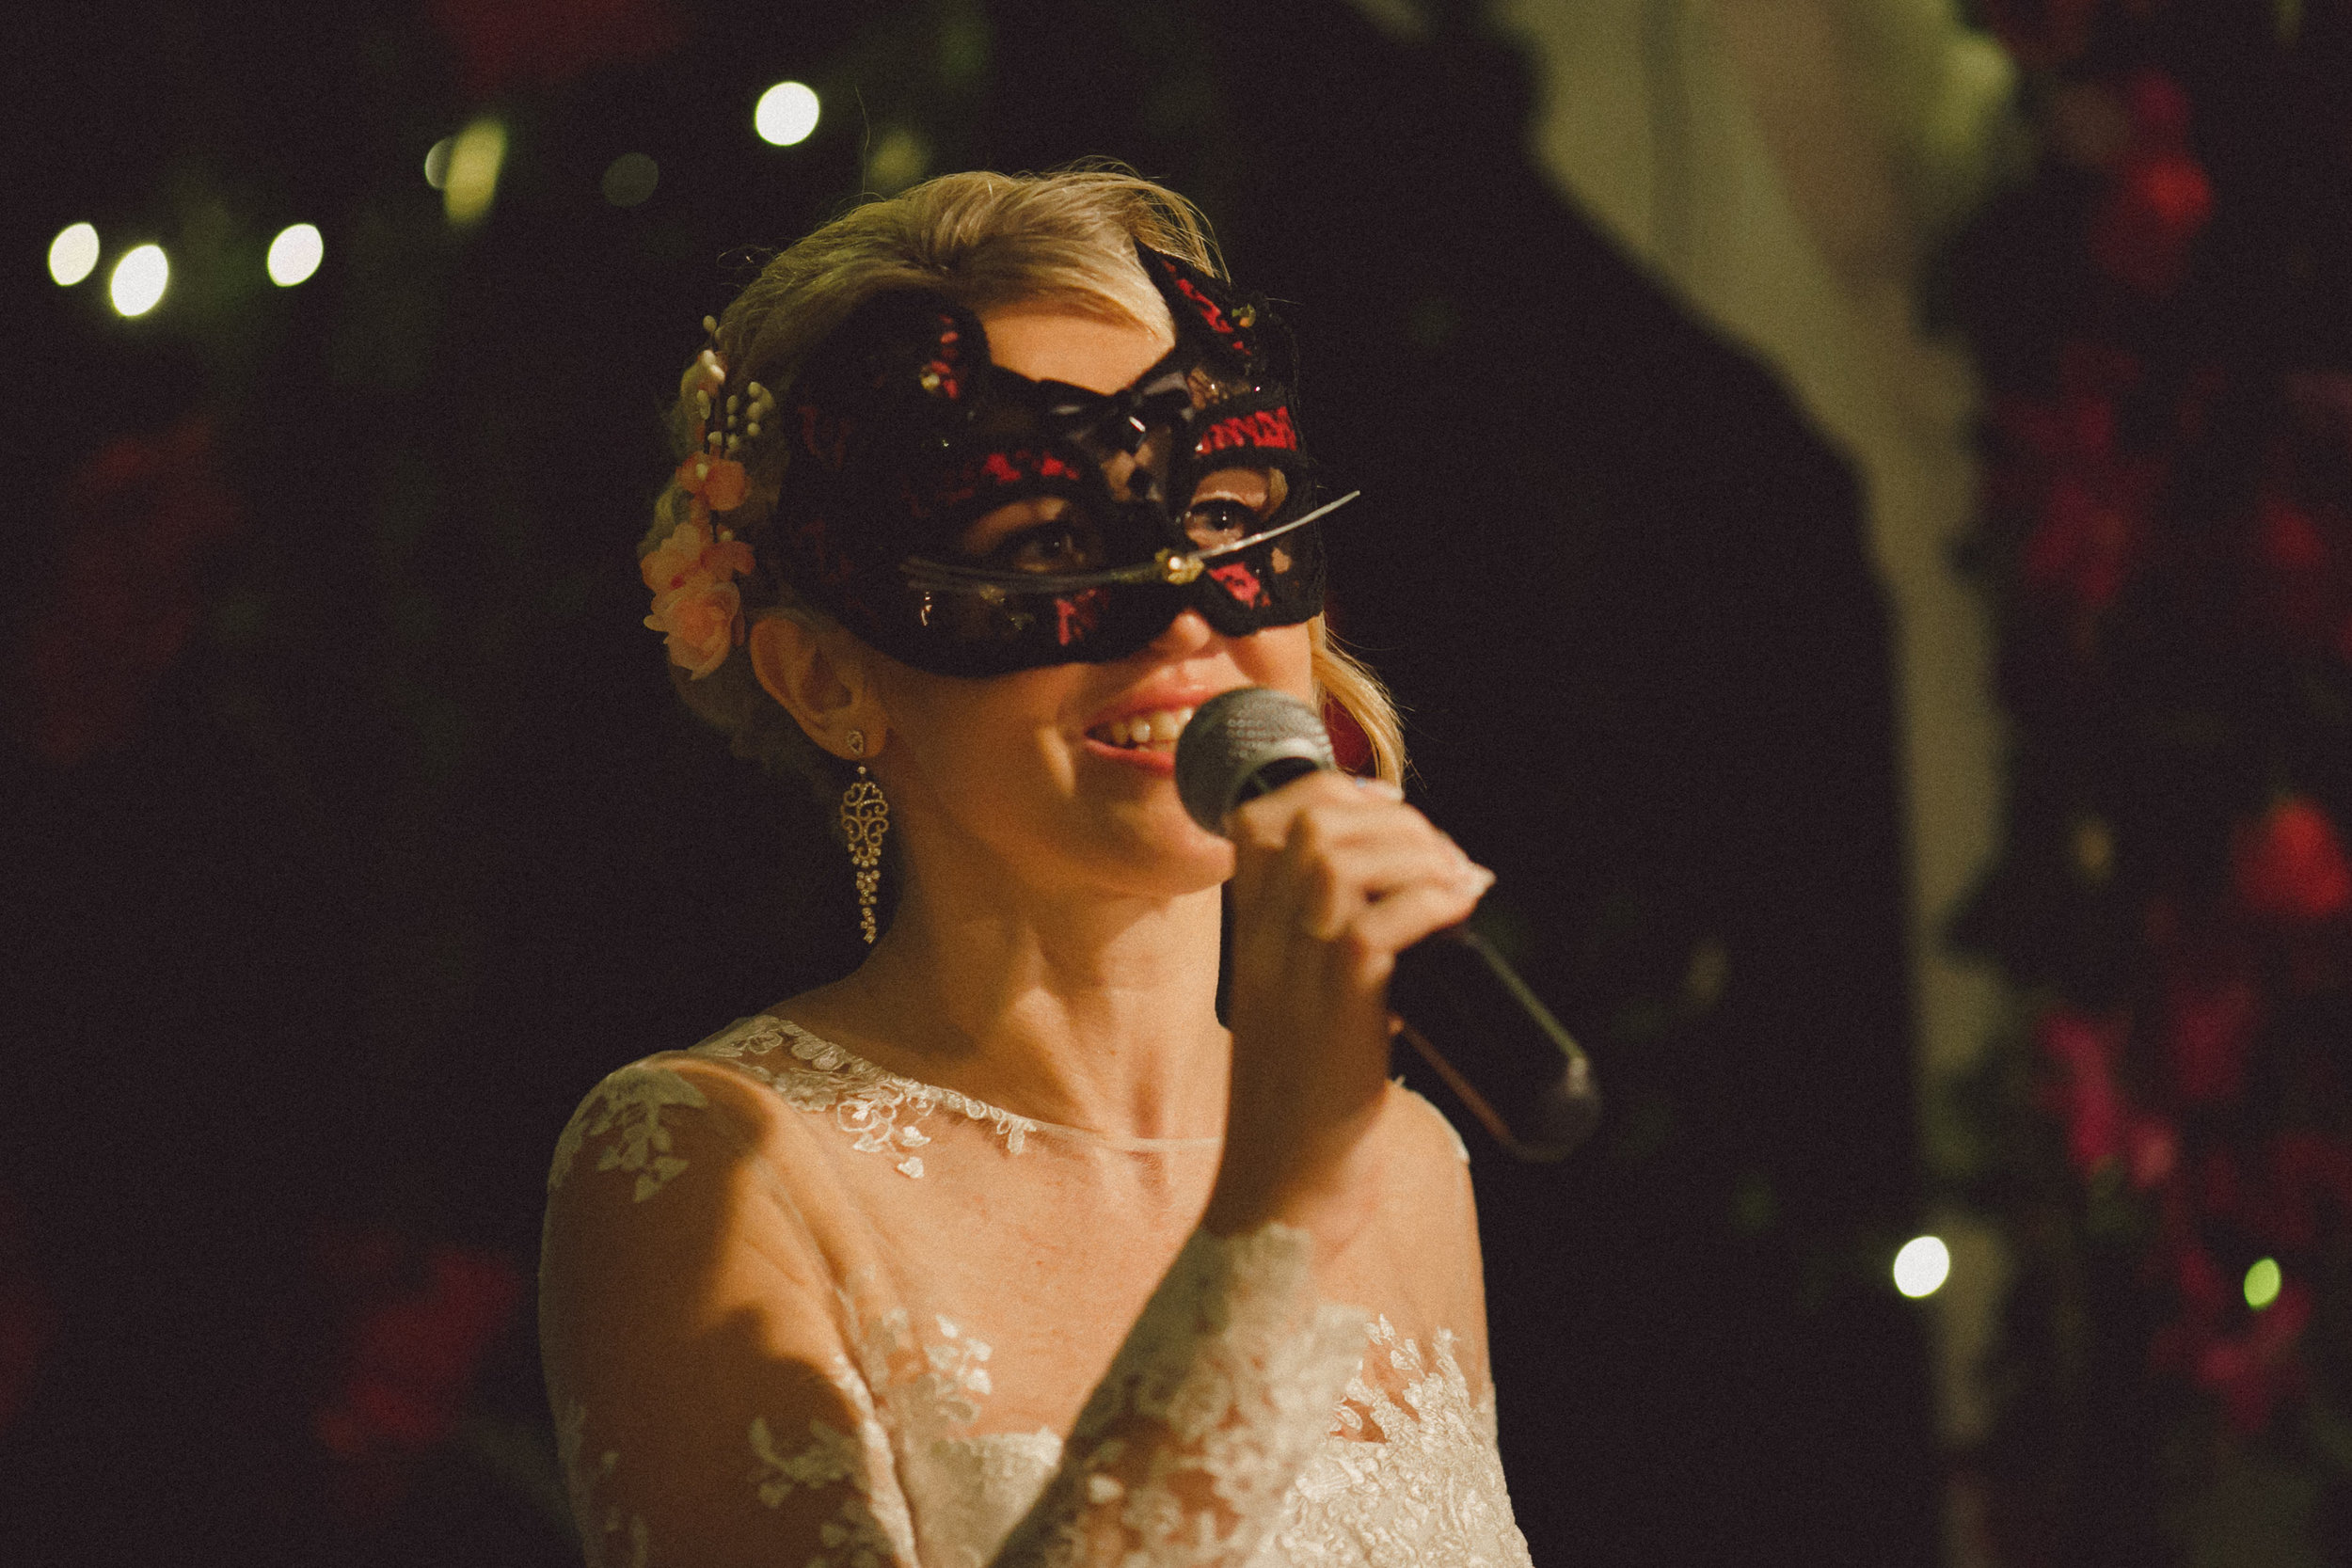 bride performing a surprise song for the groom  custom-made cats mask | etsy